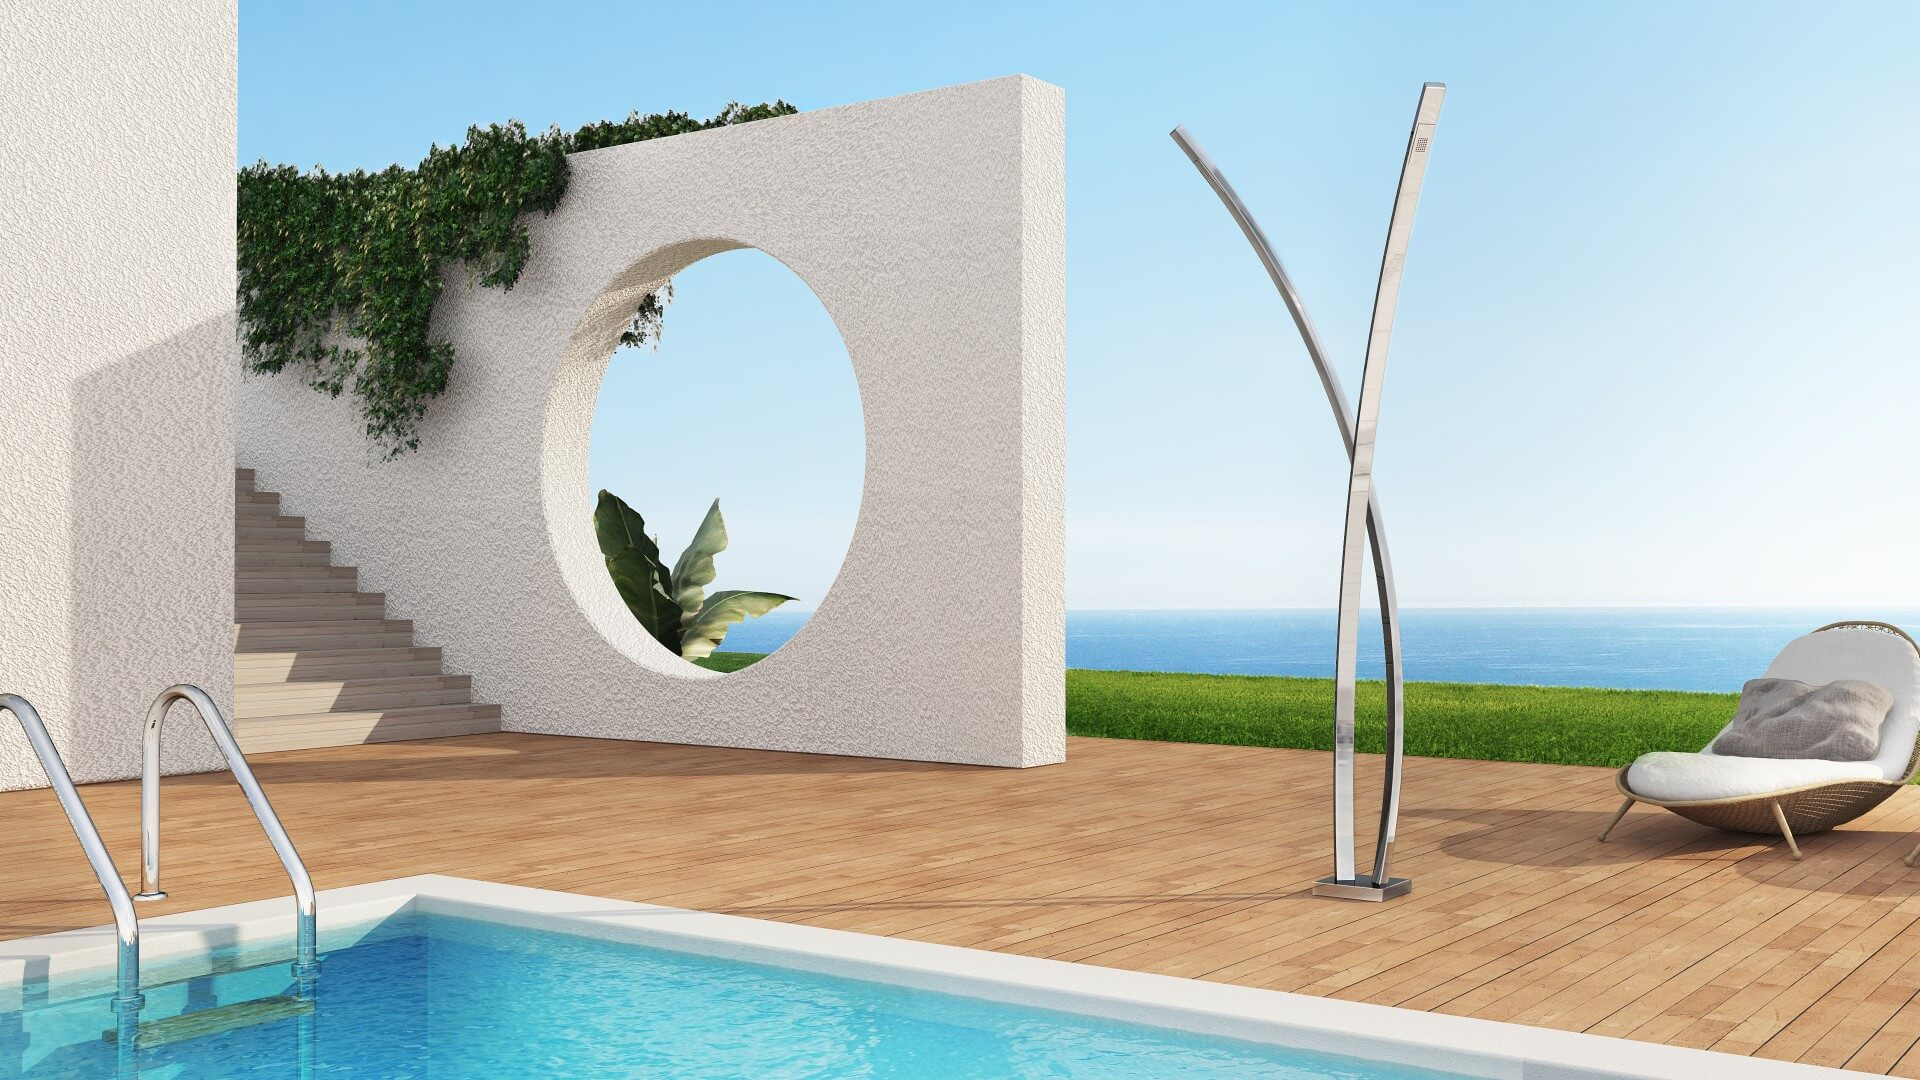 Picture Outdoor shower, pool, garden - Preludio Inoxstyle